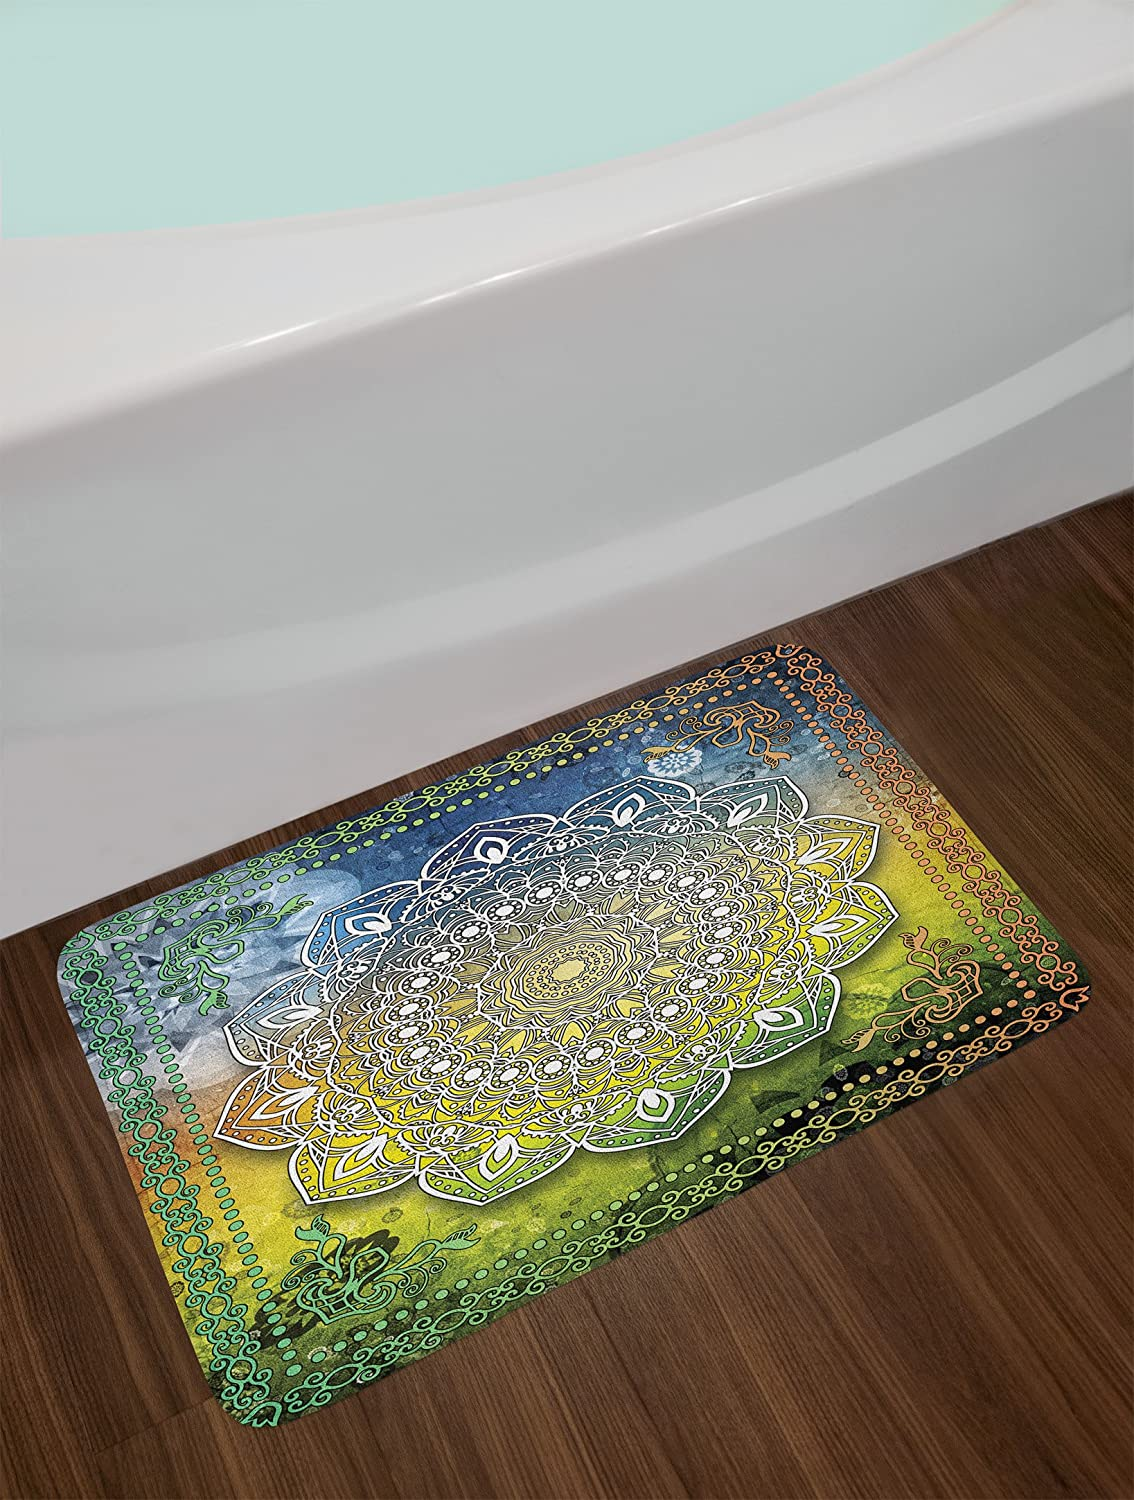 Cream Peach Coral Ambesonne Dragonfly Bath Mat Lotus Flower Field with Dragonfly Flying Oriental Blooms Artful Print Plush Bathroom Decor Mat with Non Slip Backing 29.5 W X 17.5 L Inches